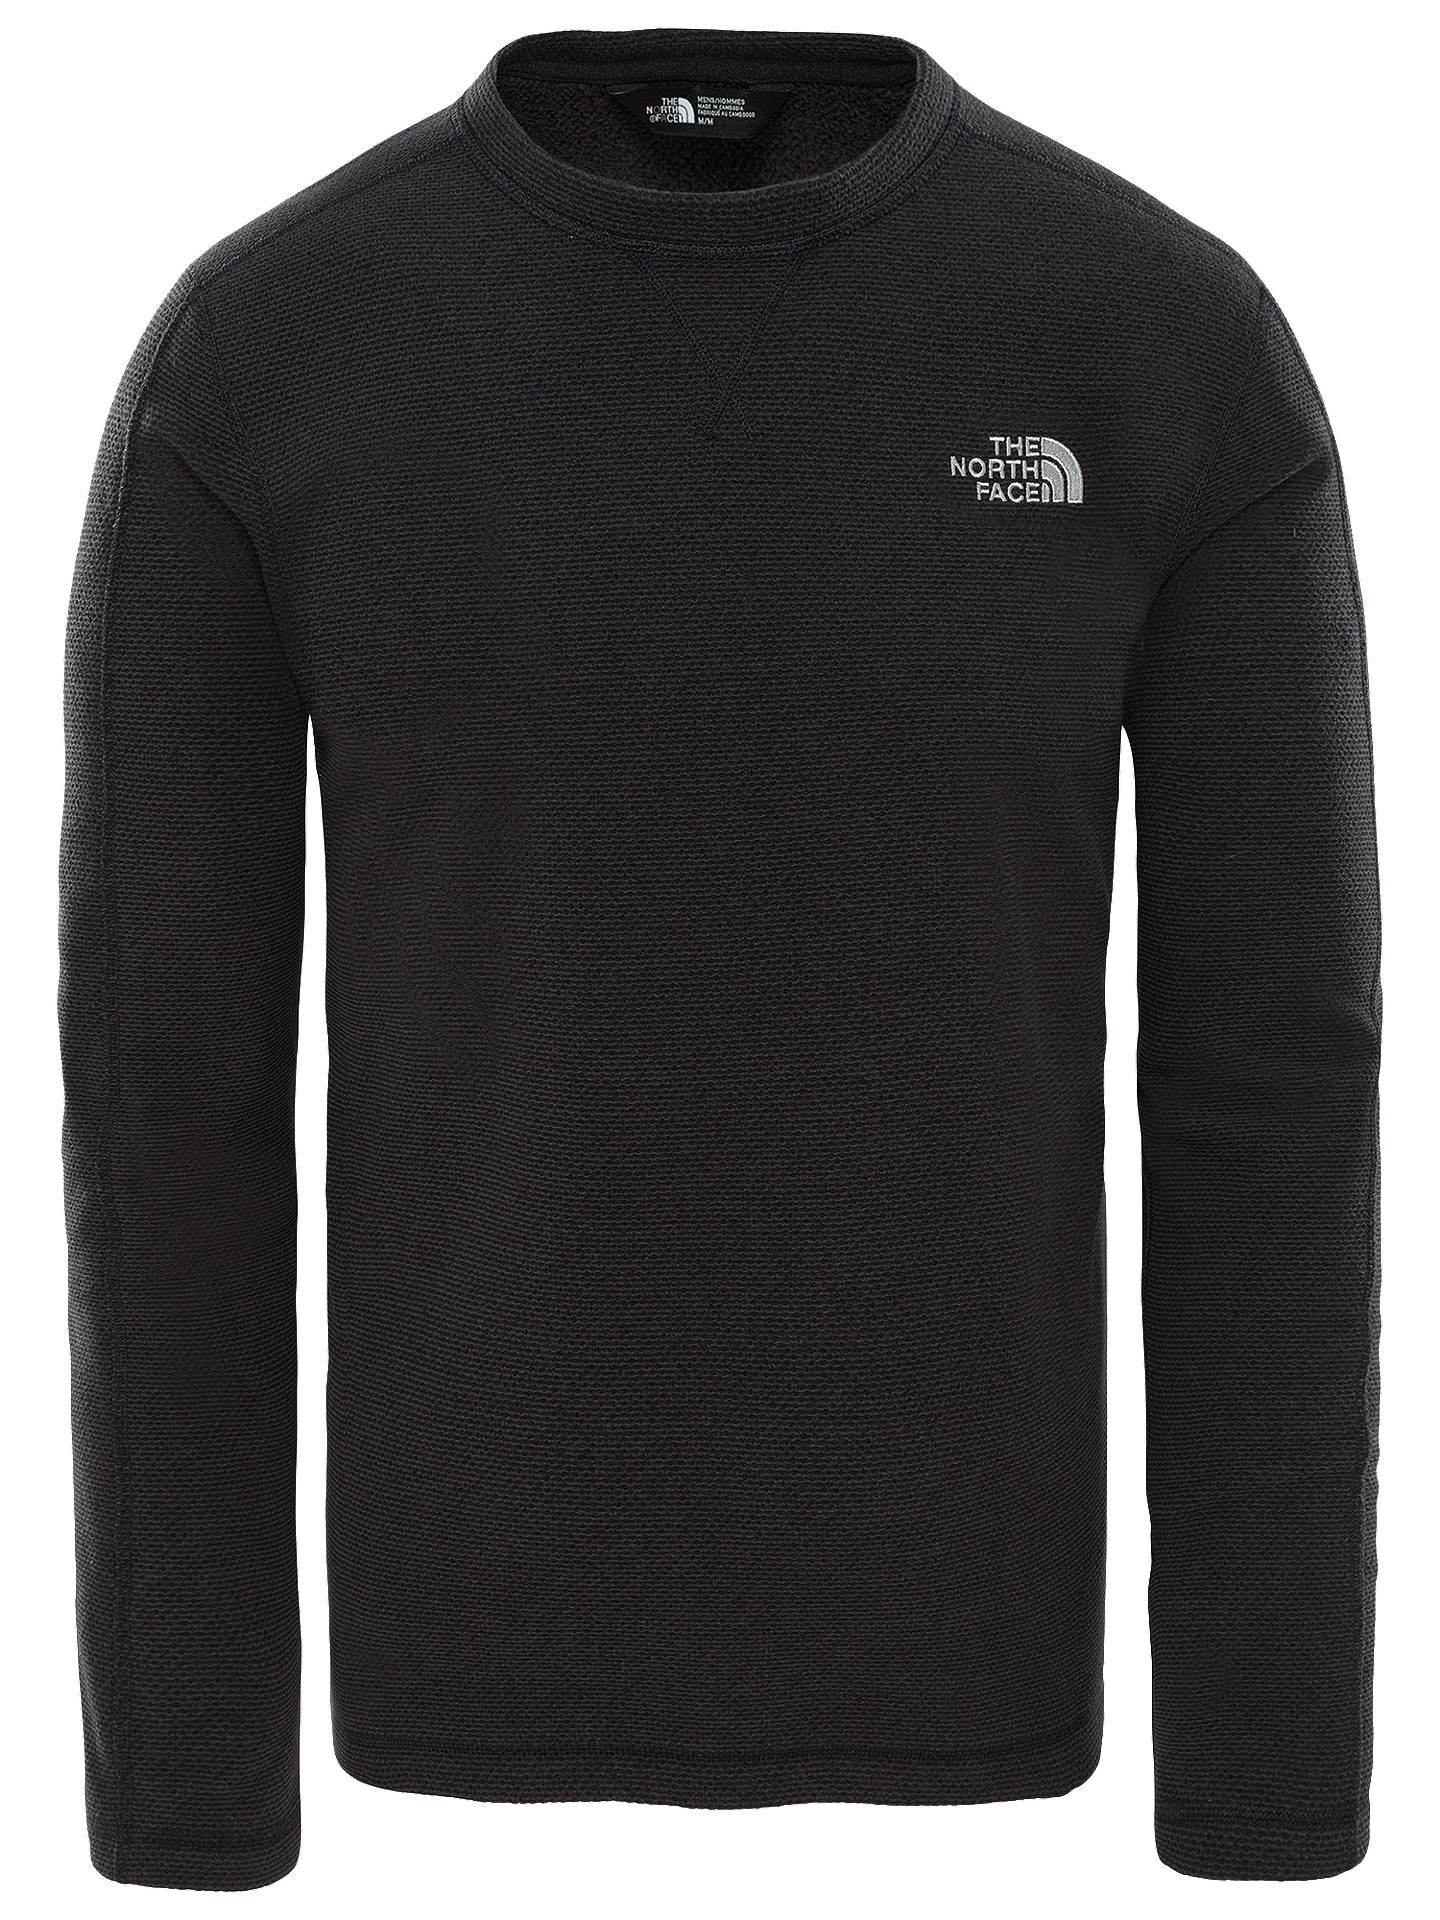 Buy The North Face Texture Cap Rock, Black, XL Online at johnlewis.com